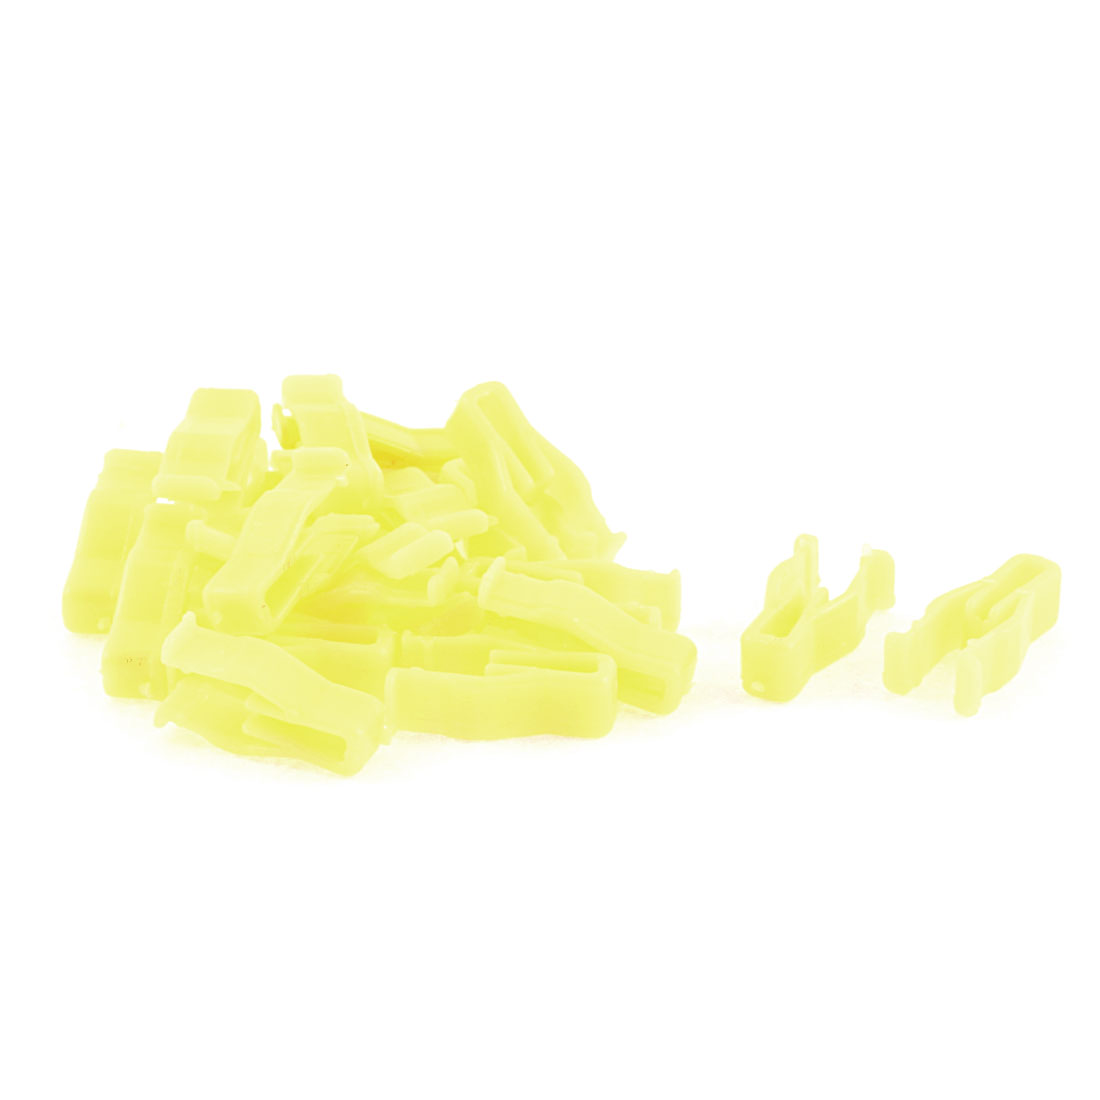 20Pcs Auto Car Instrument Panel Dashboard Plastic Fastener Lemon Yellow